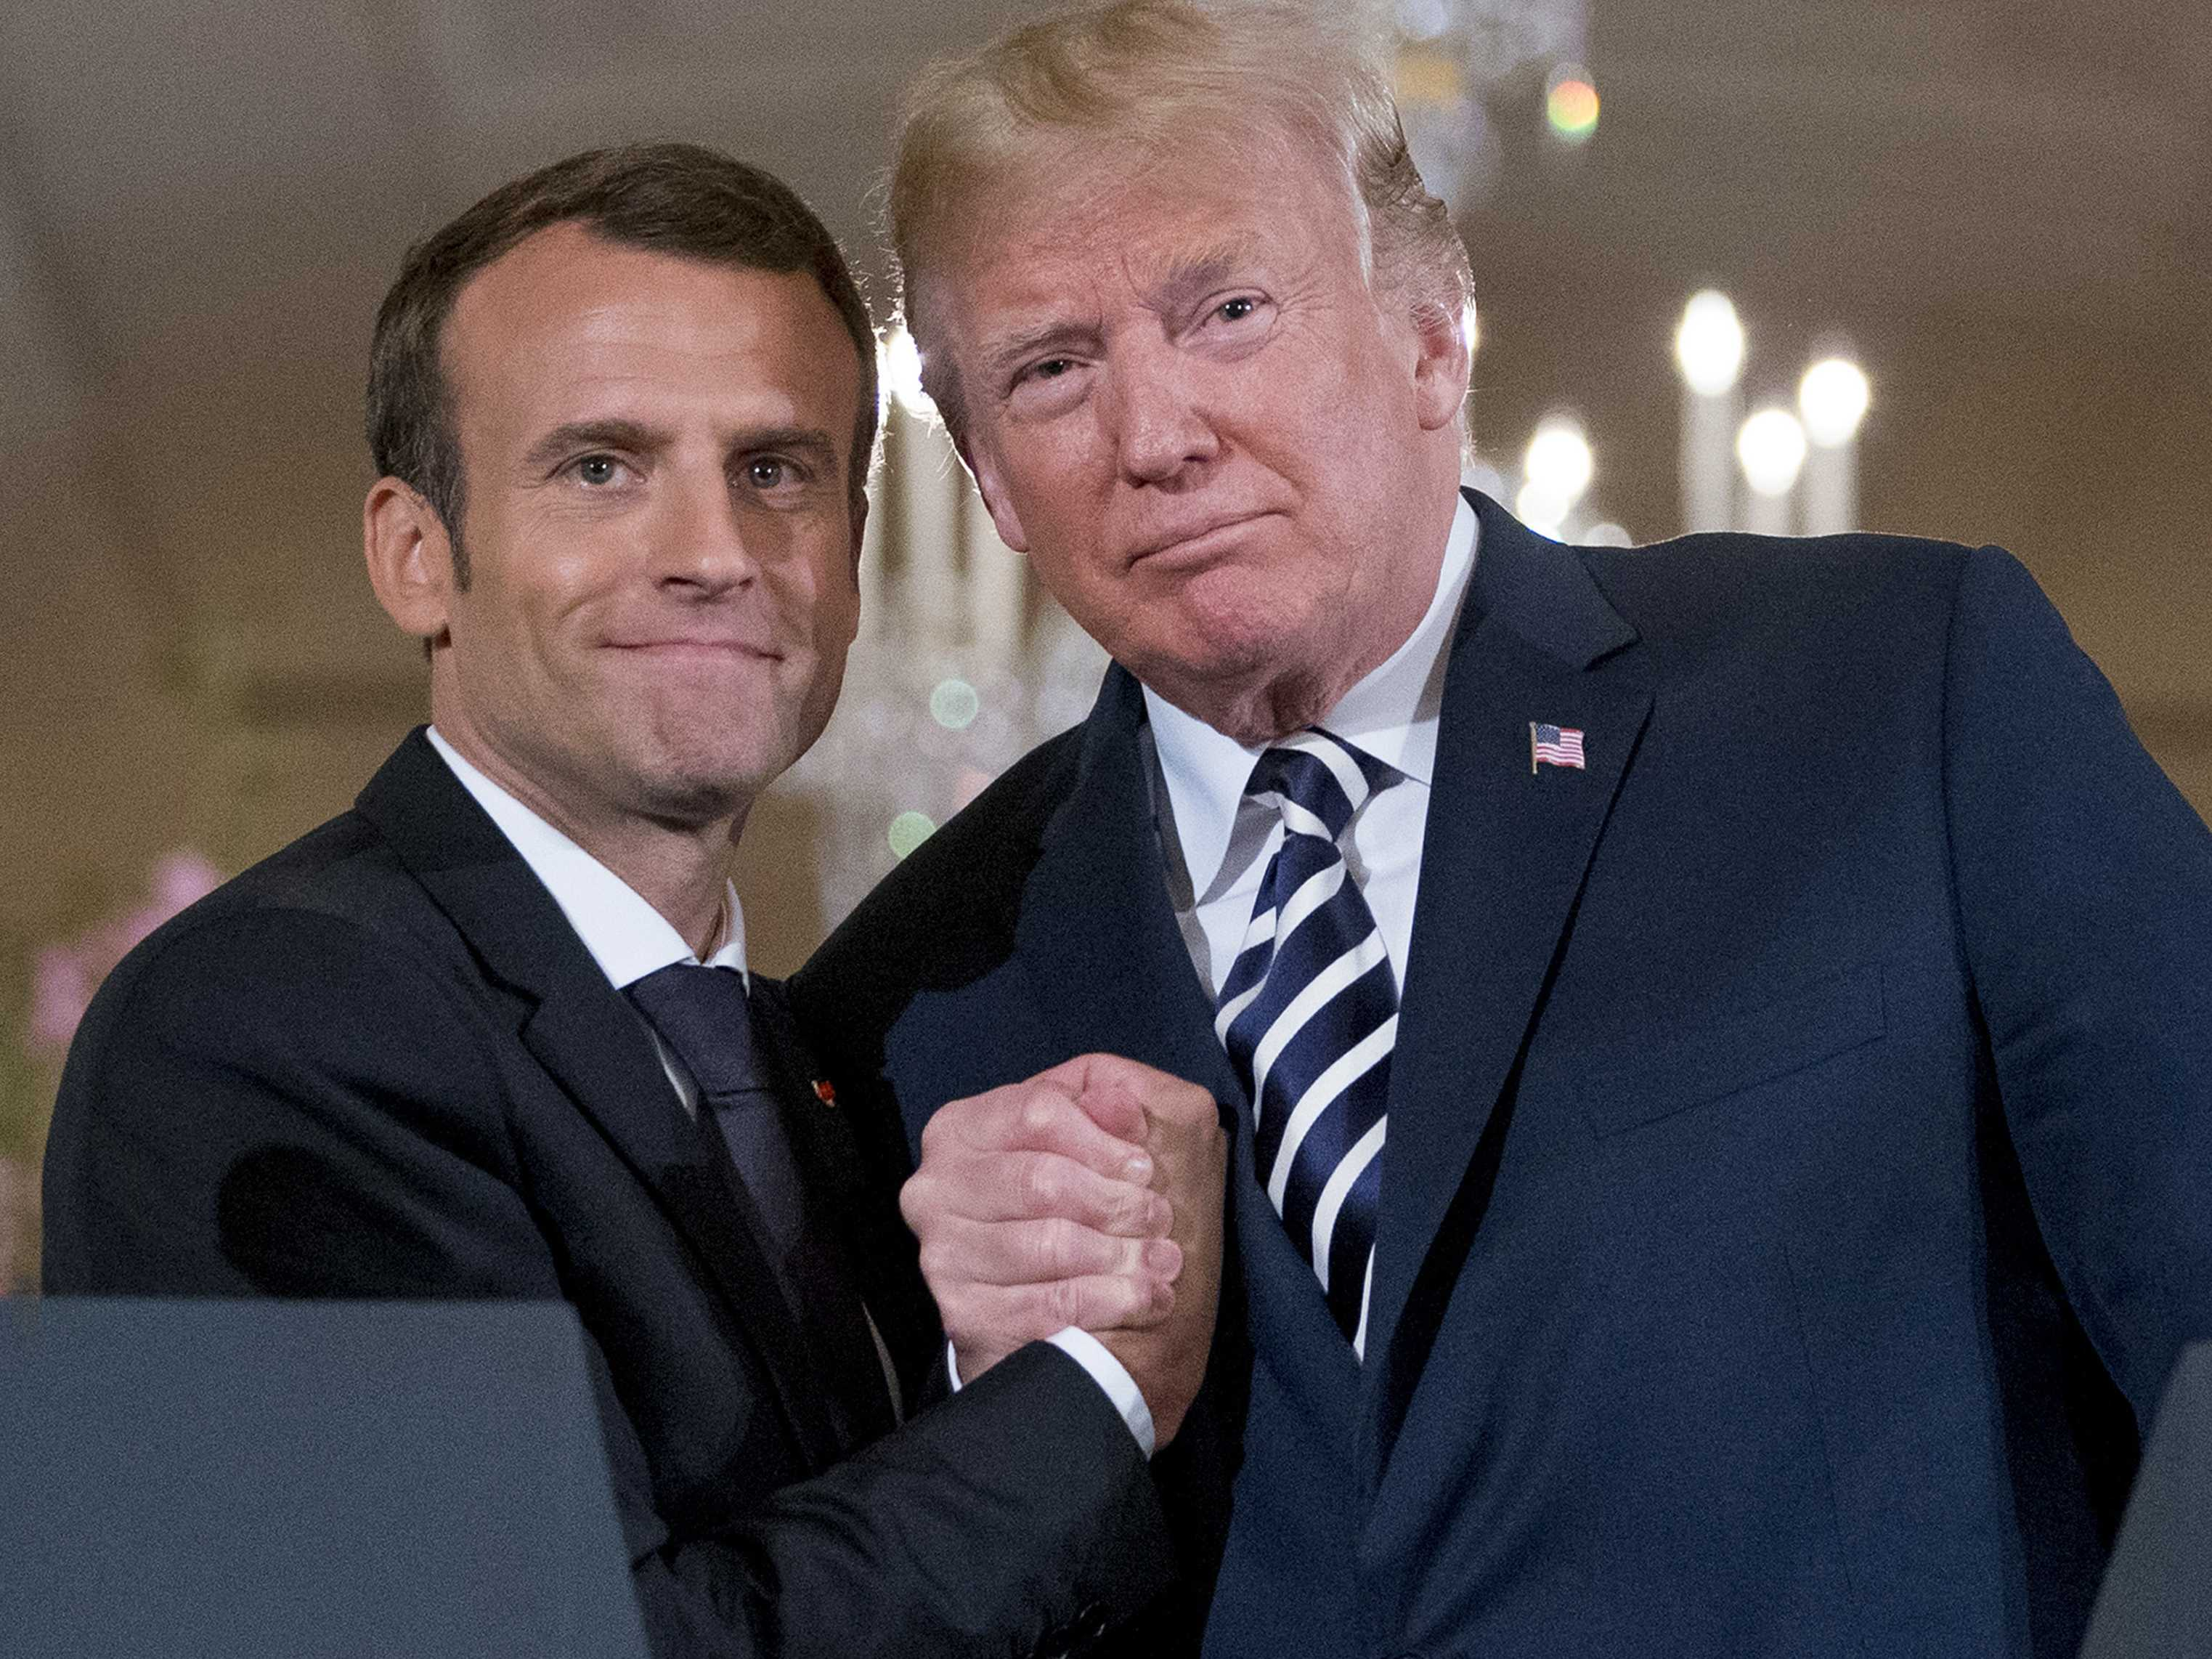 Handshakes and Kisses Aside, Some Issues Split Trump, Macron